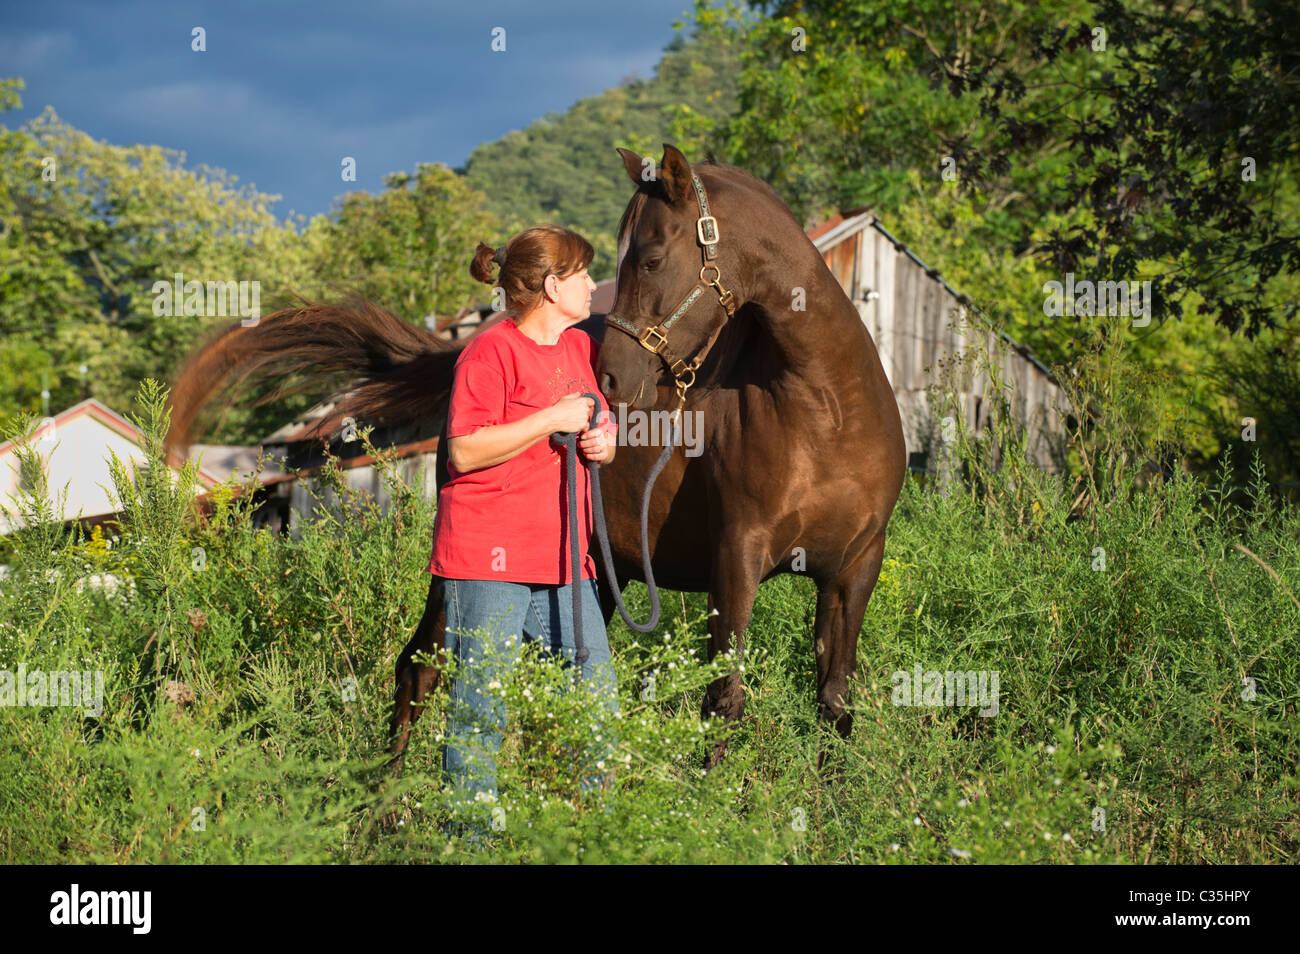 Woman looking at her Arabian horse eye to eye, image for love, confrontation or understanding, taken in summer evening - Stock Image